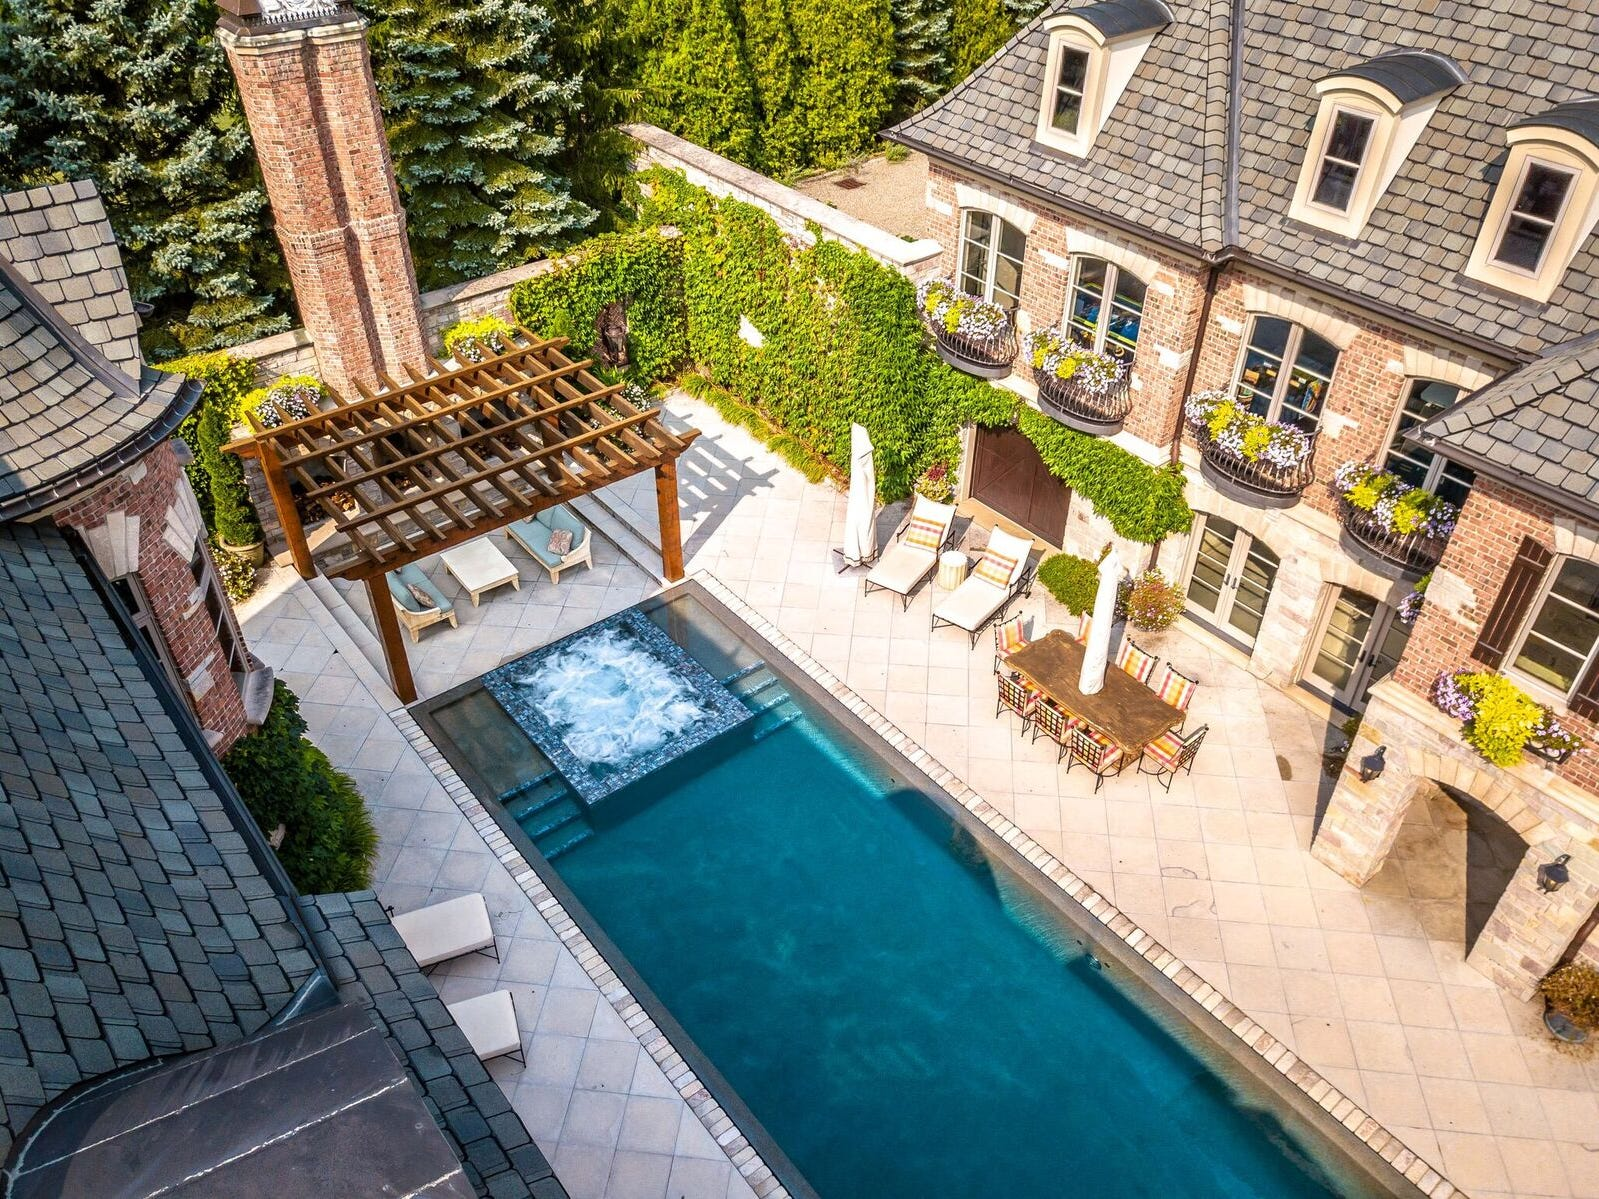 The view of the pool from the highest point of the home.